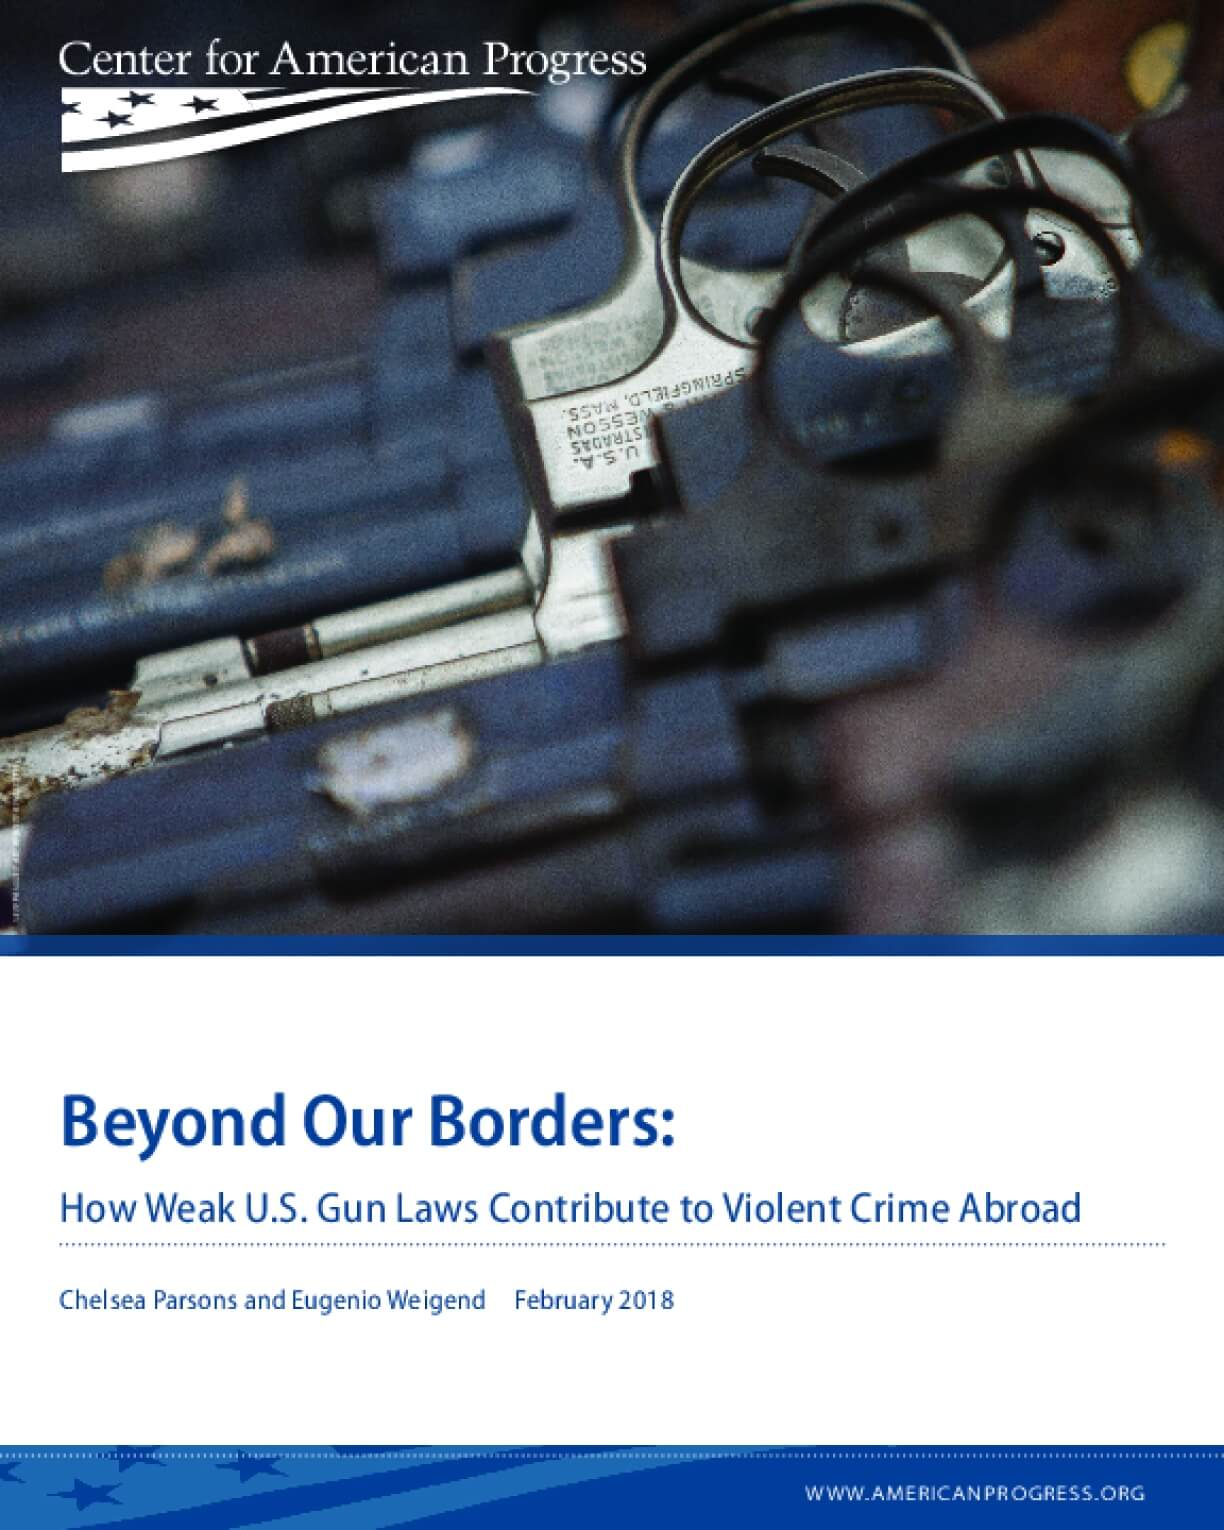 Beyond Our Borders: How Weak U.S. Gun Laws Contribute to Violent Crime Abroad